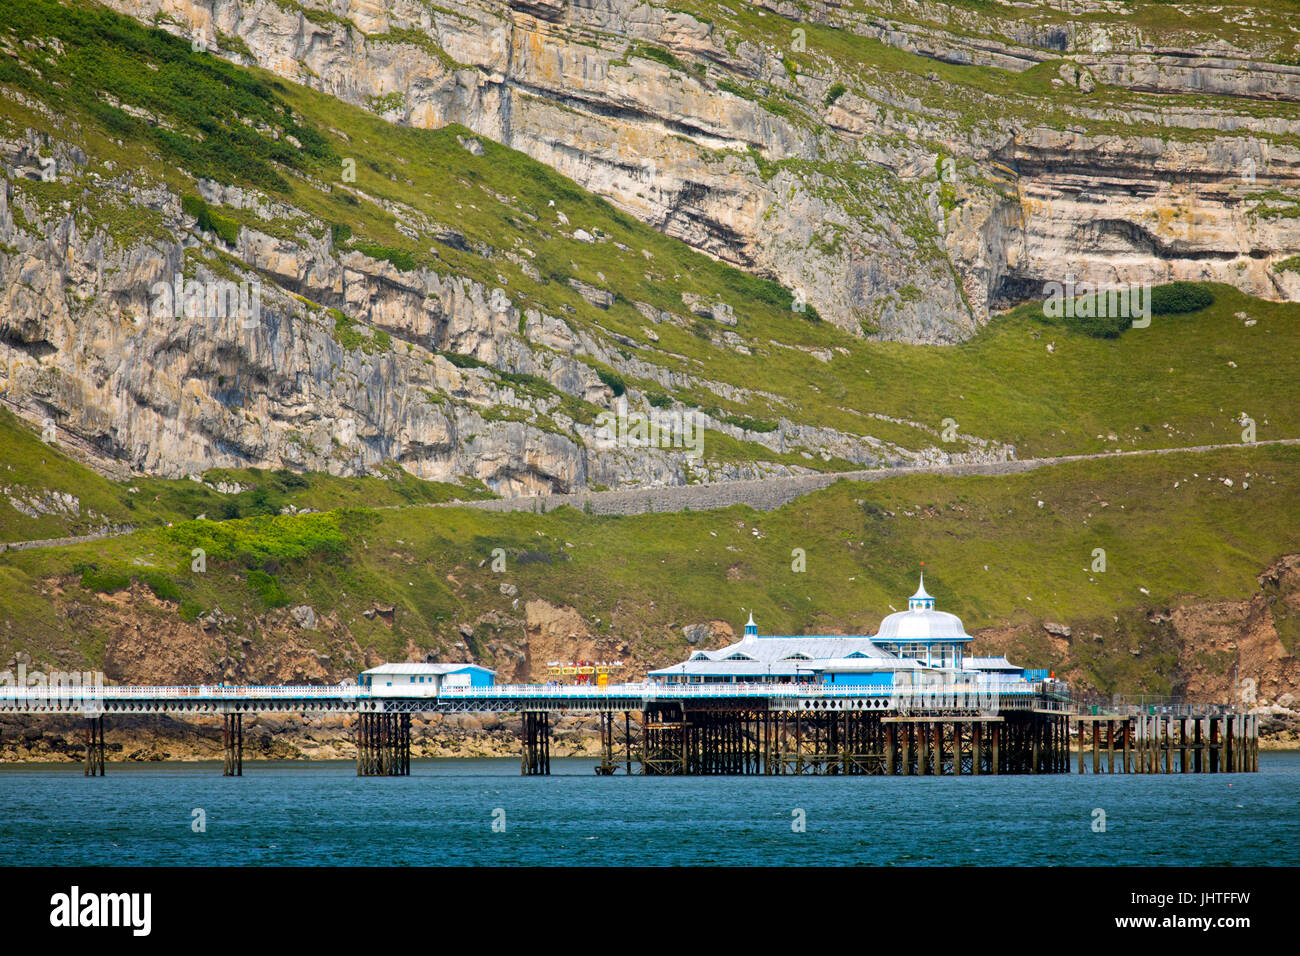 A summers day over both the Great Orme limestone rock formation and the Pier beneath it at the popular seaside resort Stock Photo